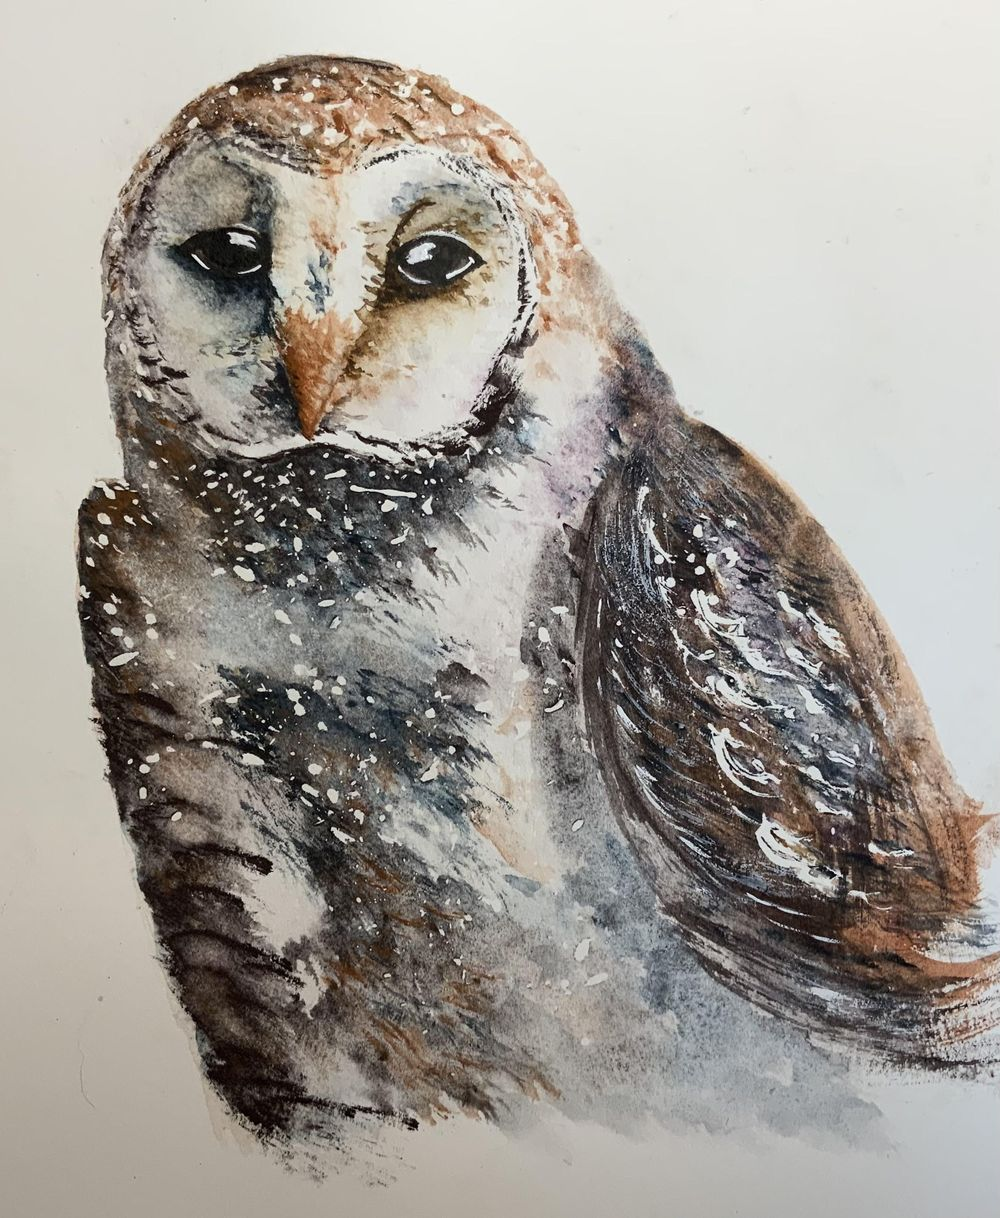 Barn owl second attempt - image 1 - student project